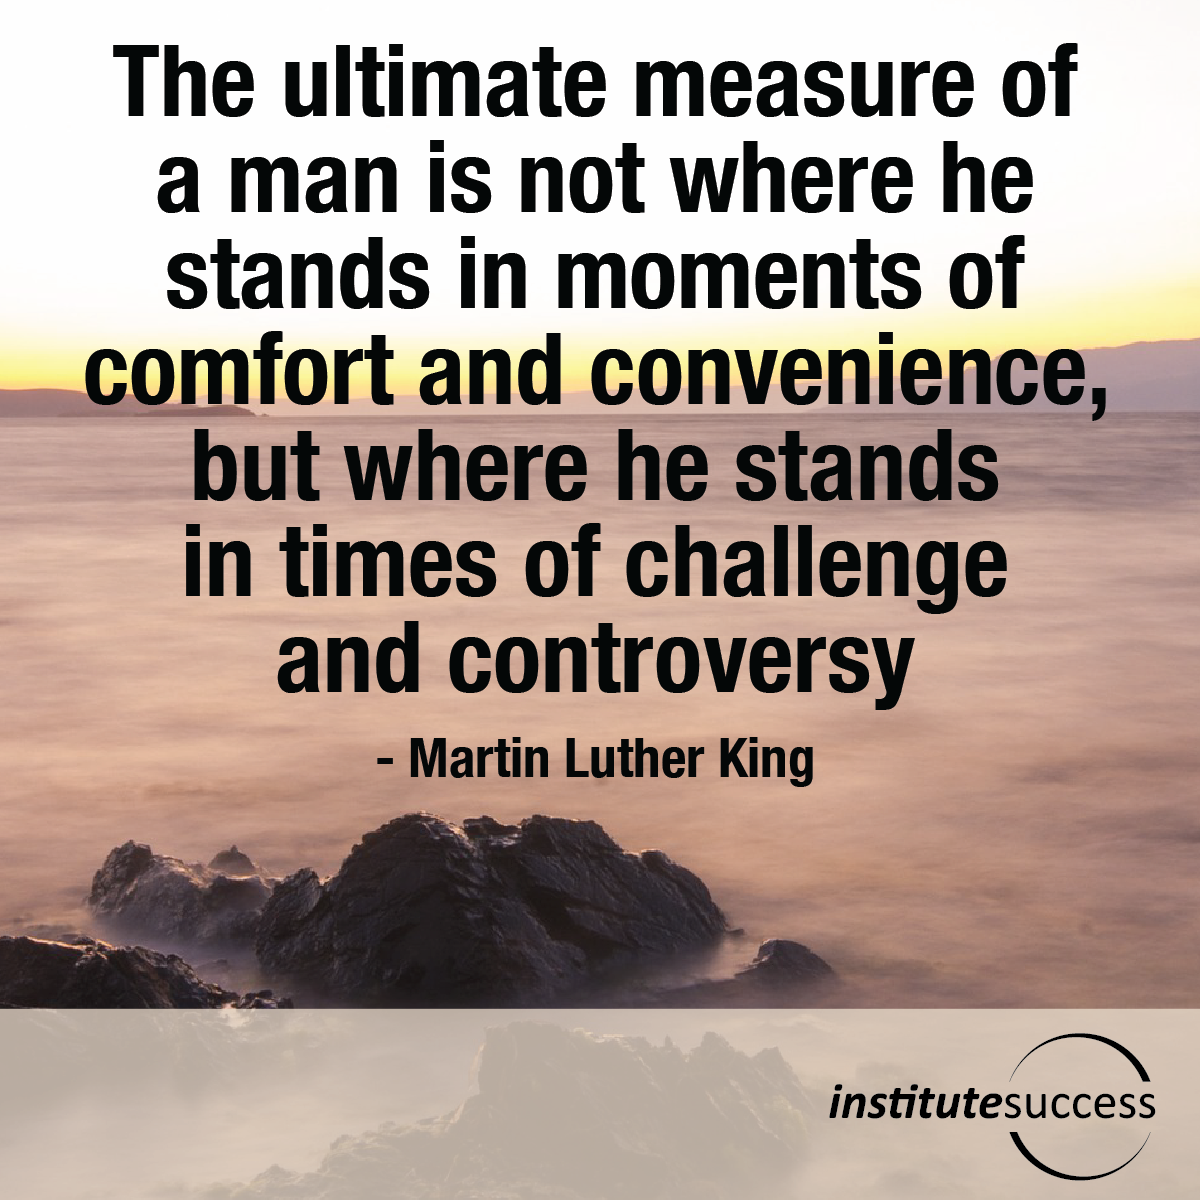 The ultimate measure of a man is not where he stands in moments of comfort and convenience, but where he stands in times of challenge and controversy – Martin Luther King